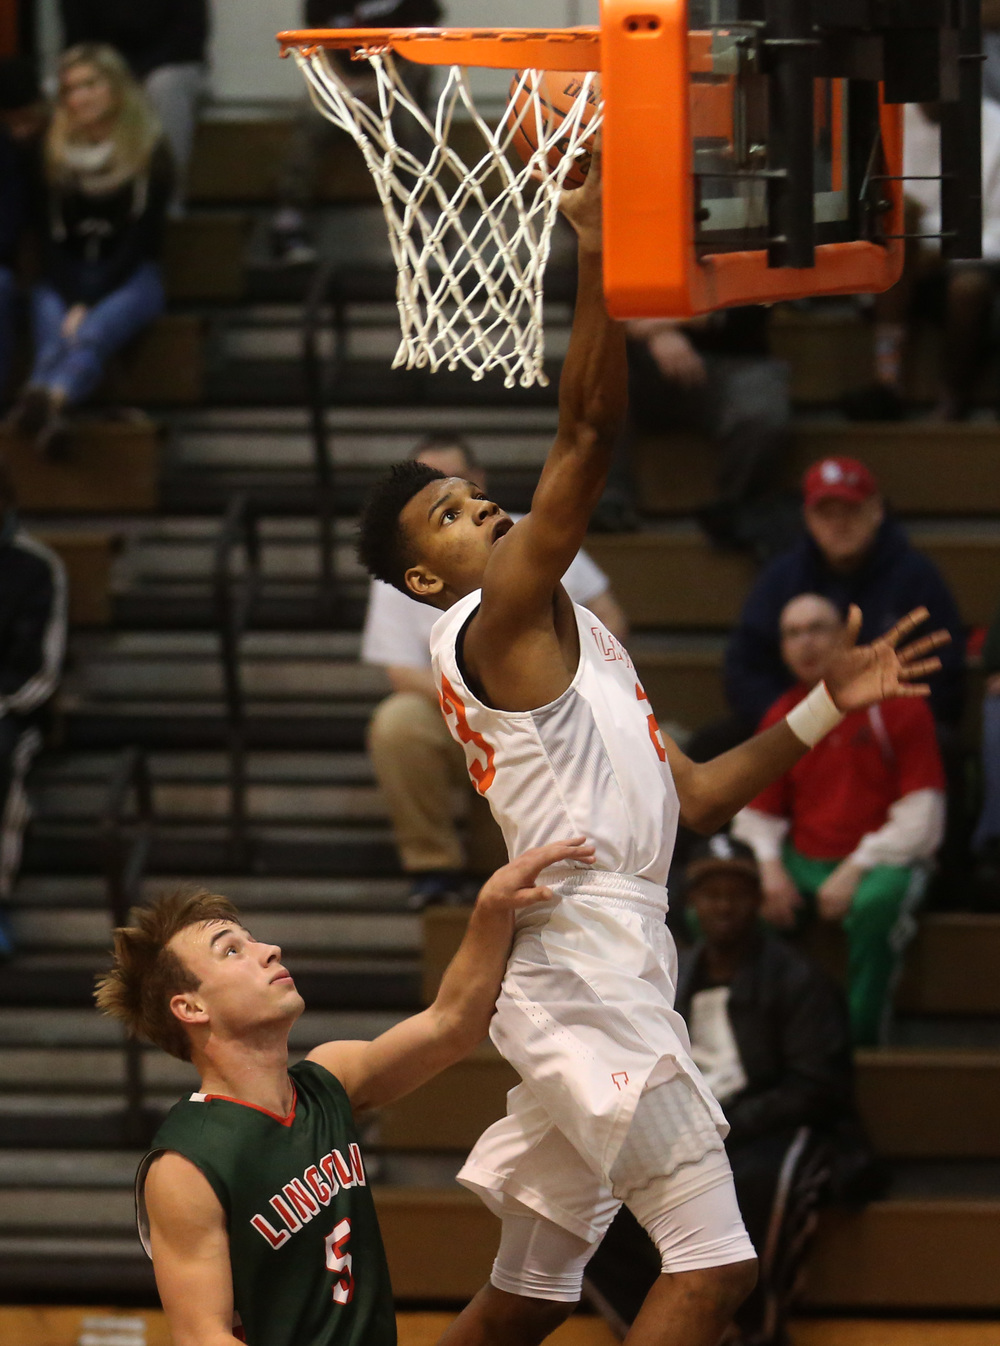 Lanphier's Aundrae Williams puts up two points in the first half. David Spencer/The State Journal Register